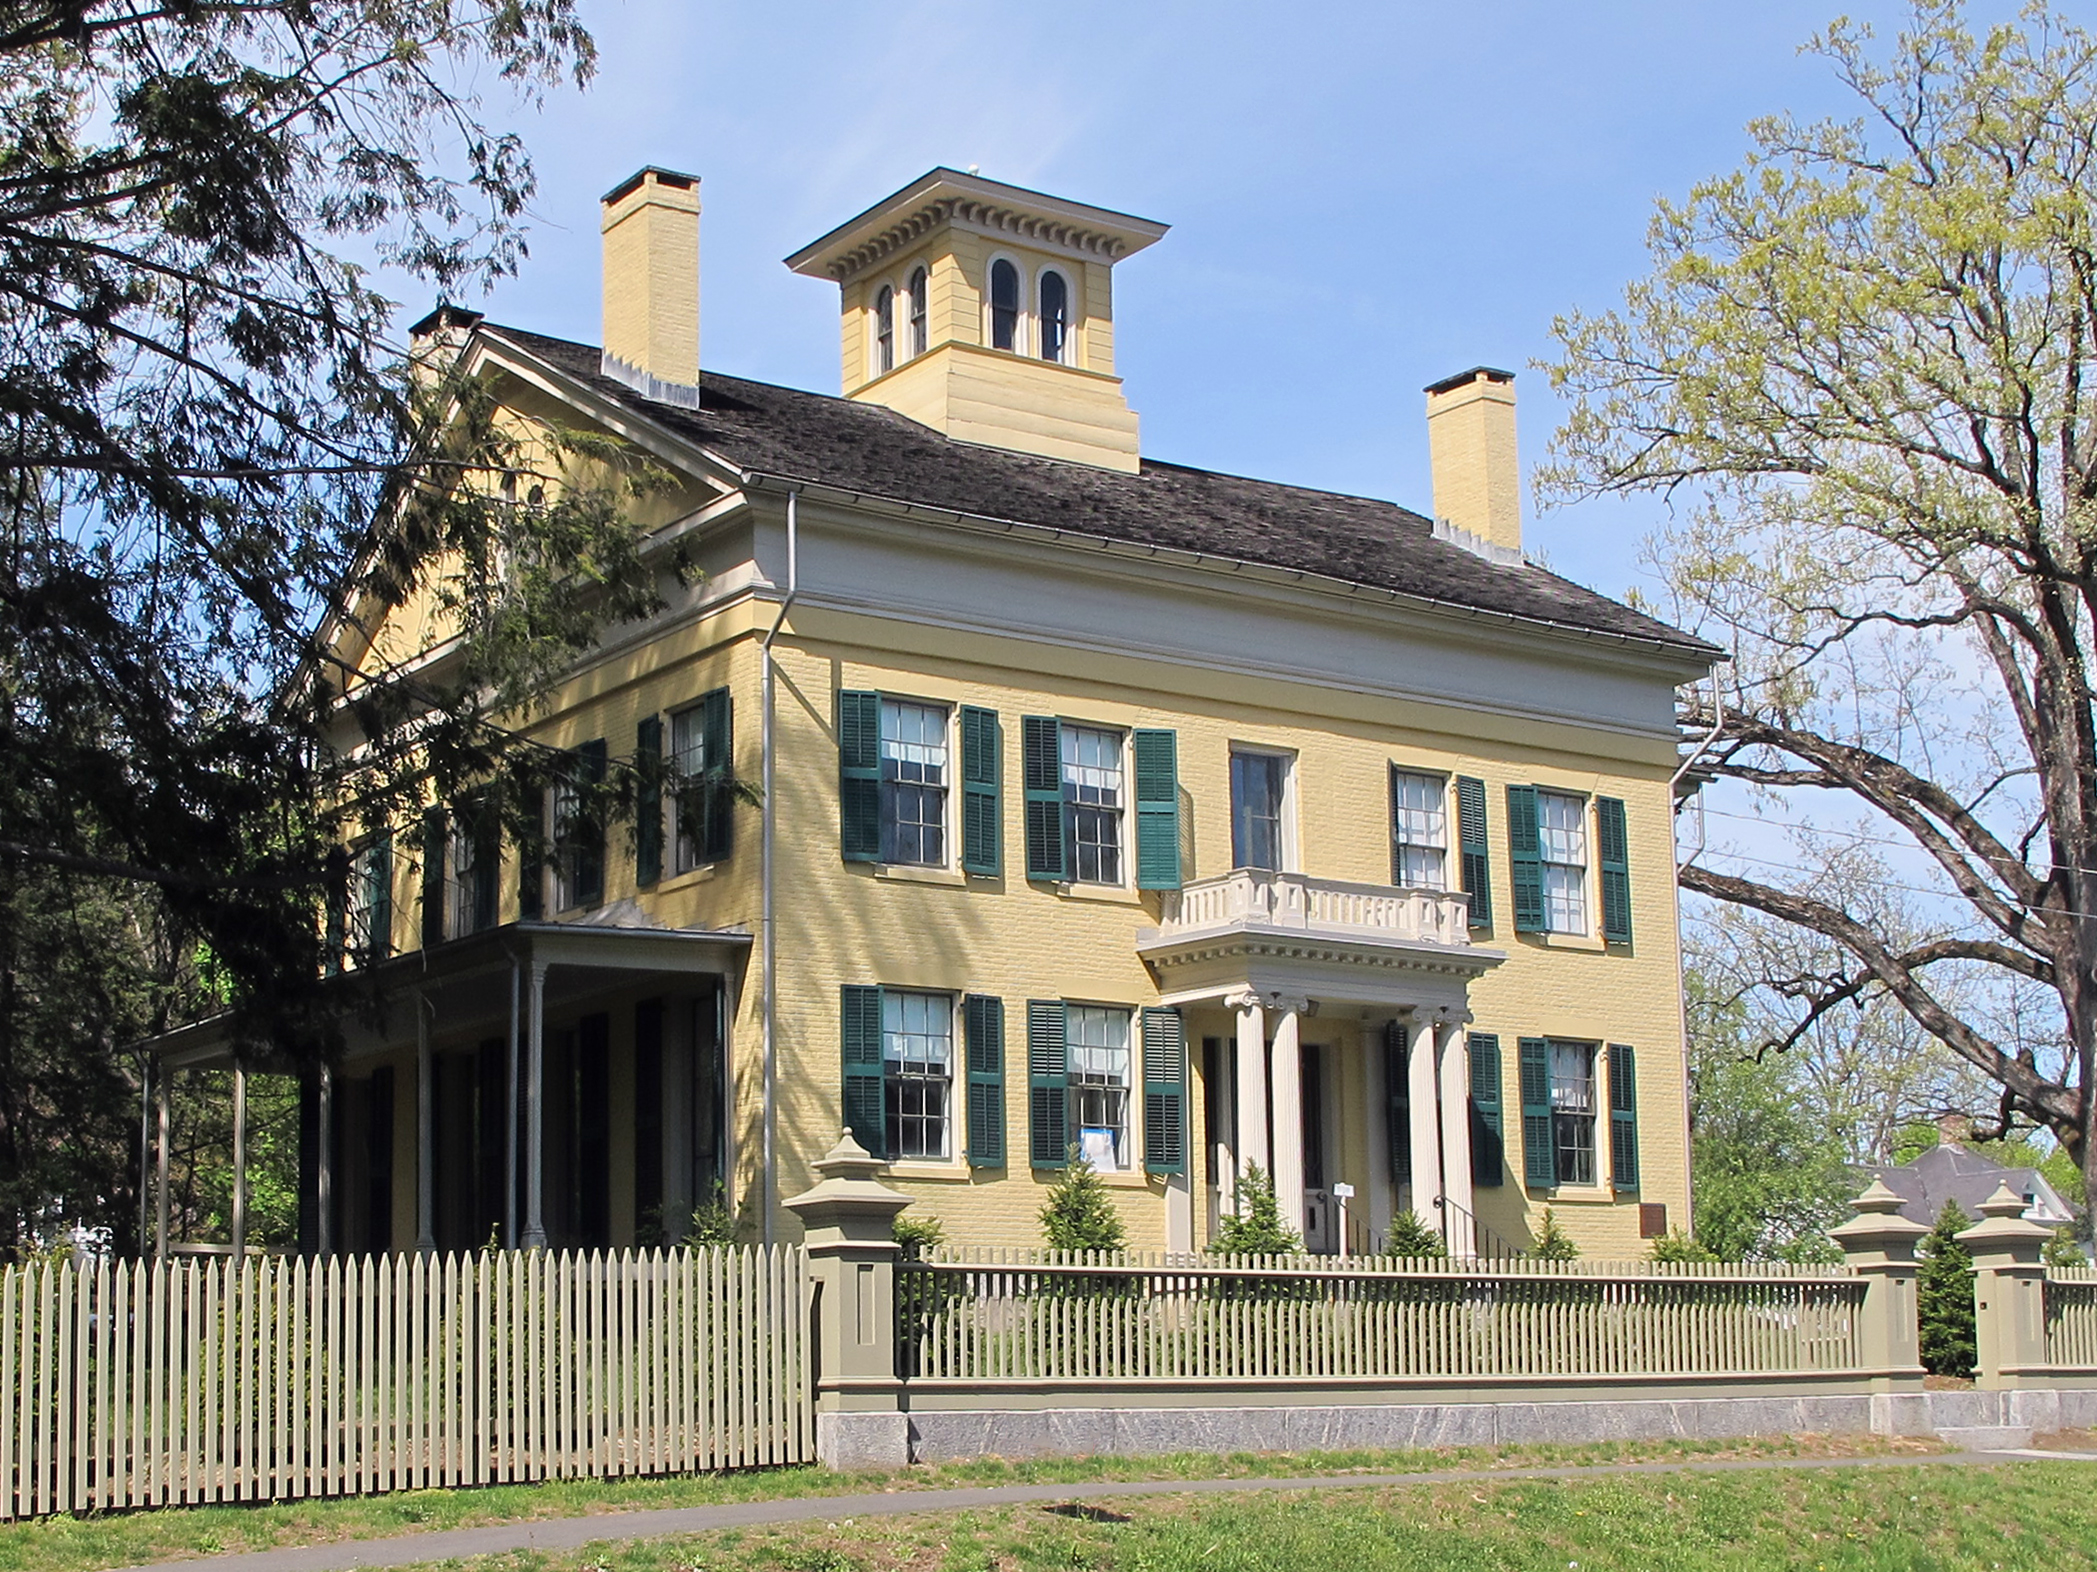 Dickinson Homestead - Amherst, MA